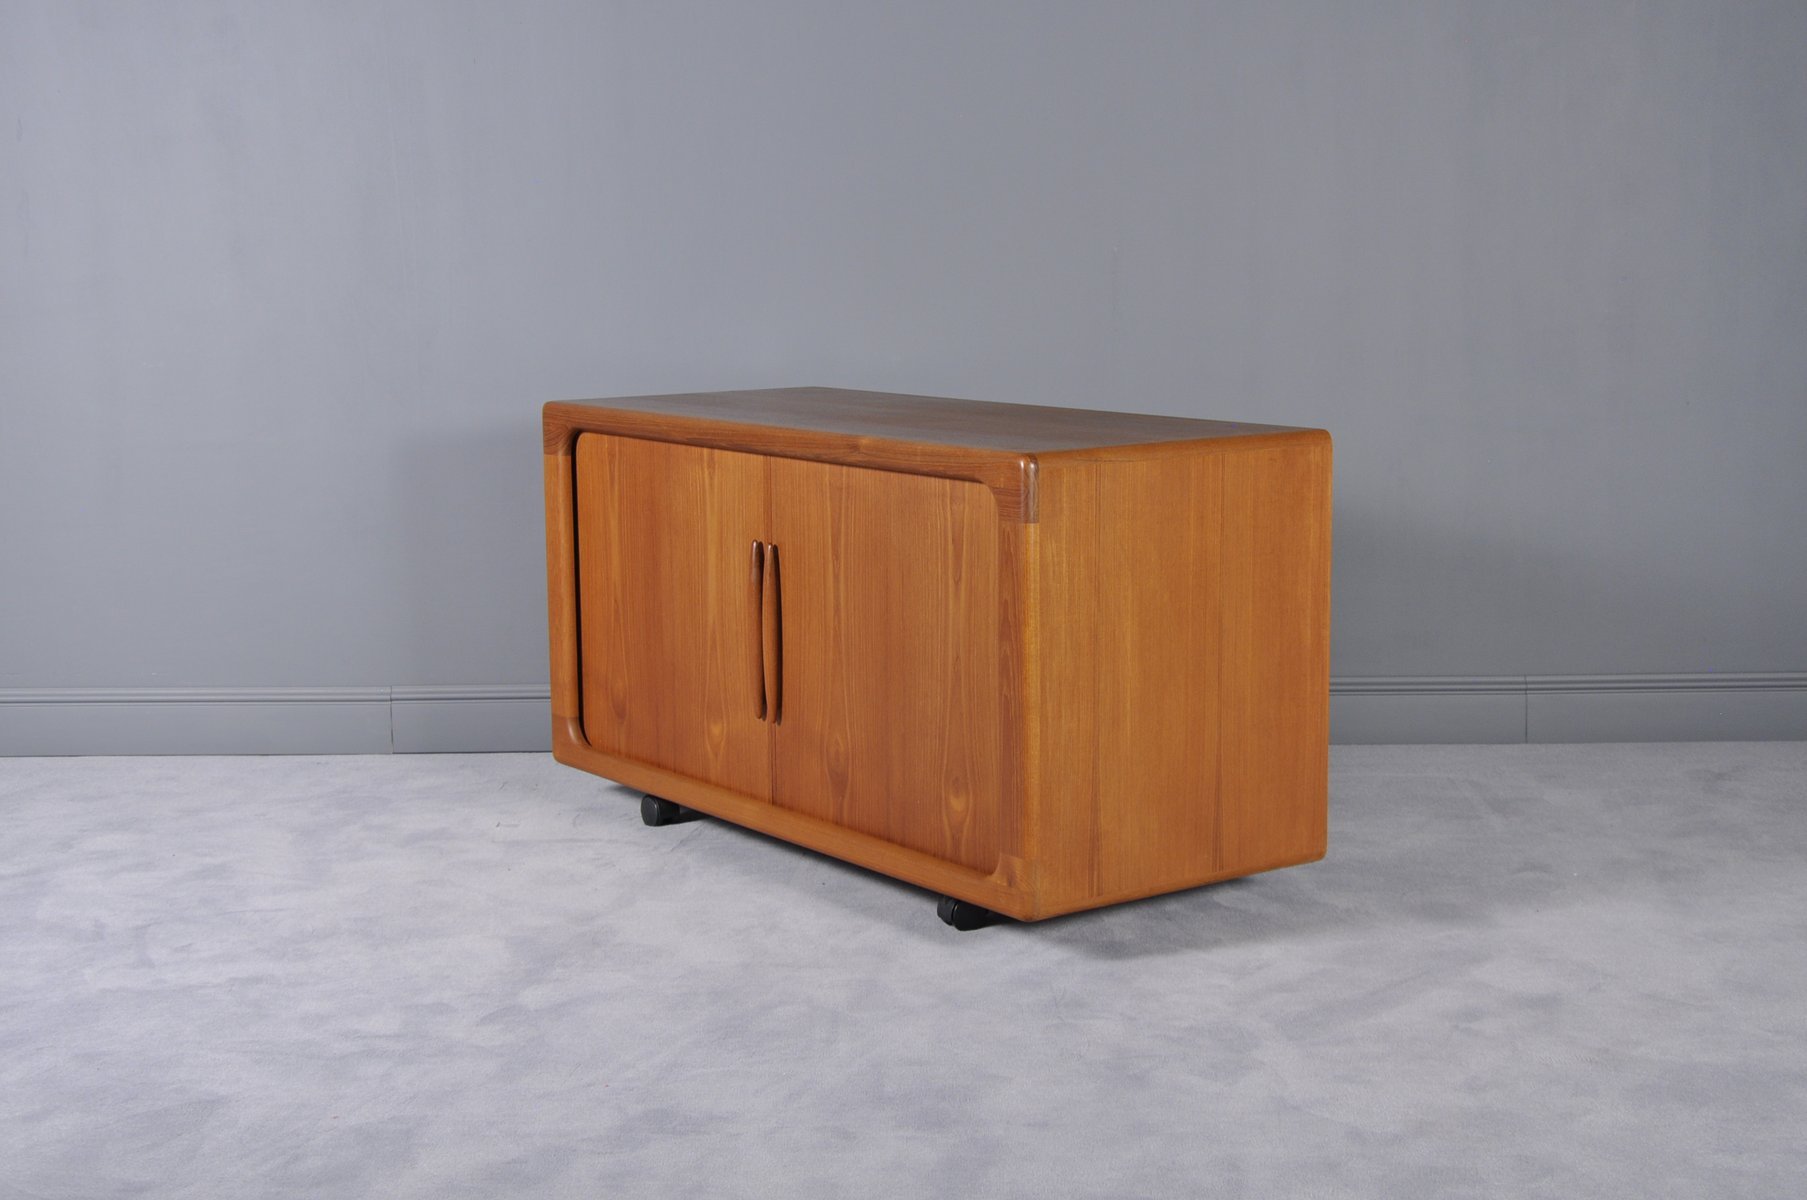 sideboard mit schiebet ren von dyrlund 1960er bei pamono kaufen. Black Bedroom Furniture Sets. Home Design Ideas